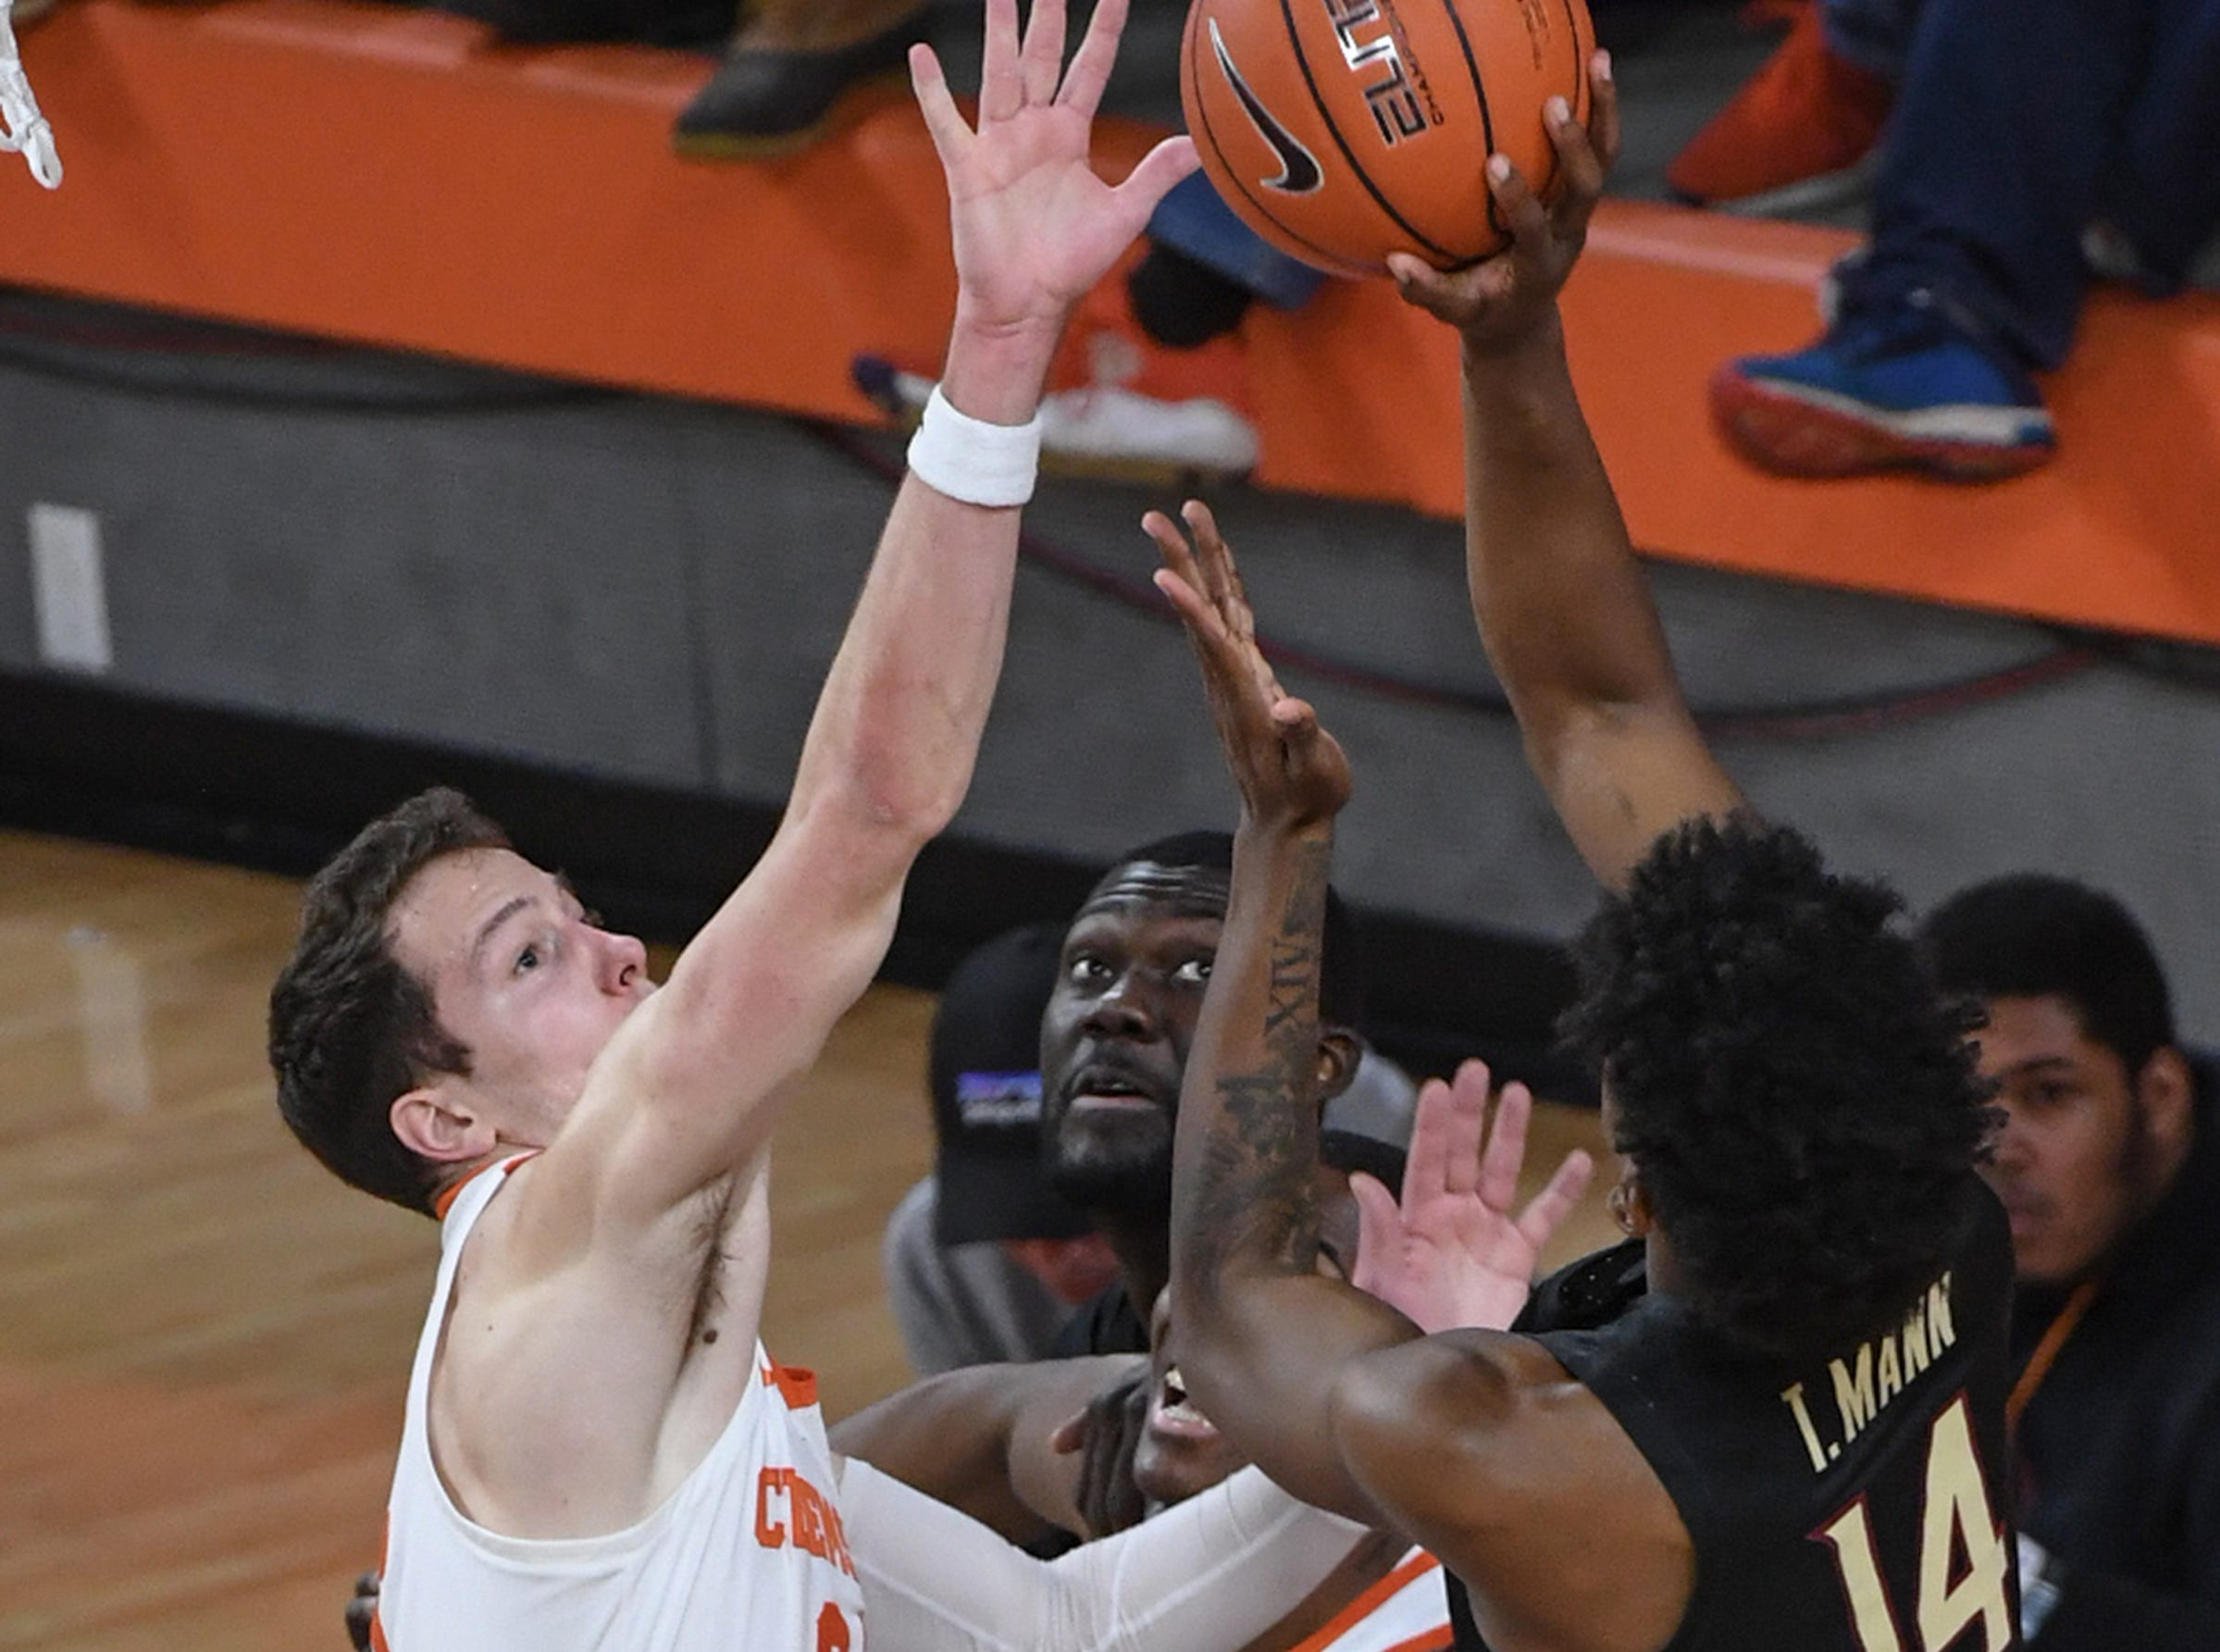 Clemson forward David Skara (24) defends a shot by Florida State guard Terence Mann(14) during the first half at Littlejohn Coliseum in Clemson Tuesday, February 19, 2019.